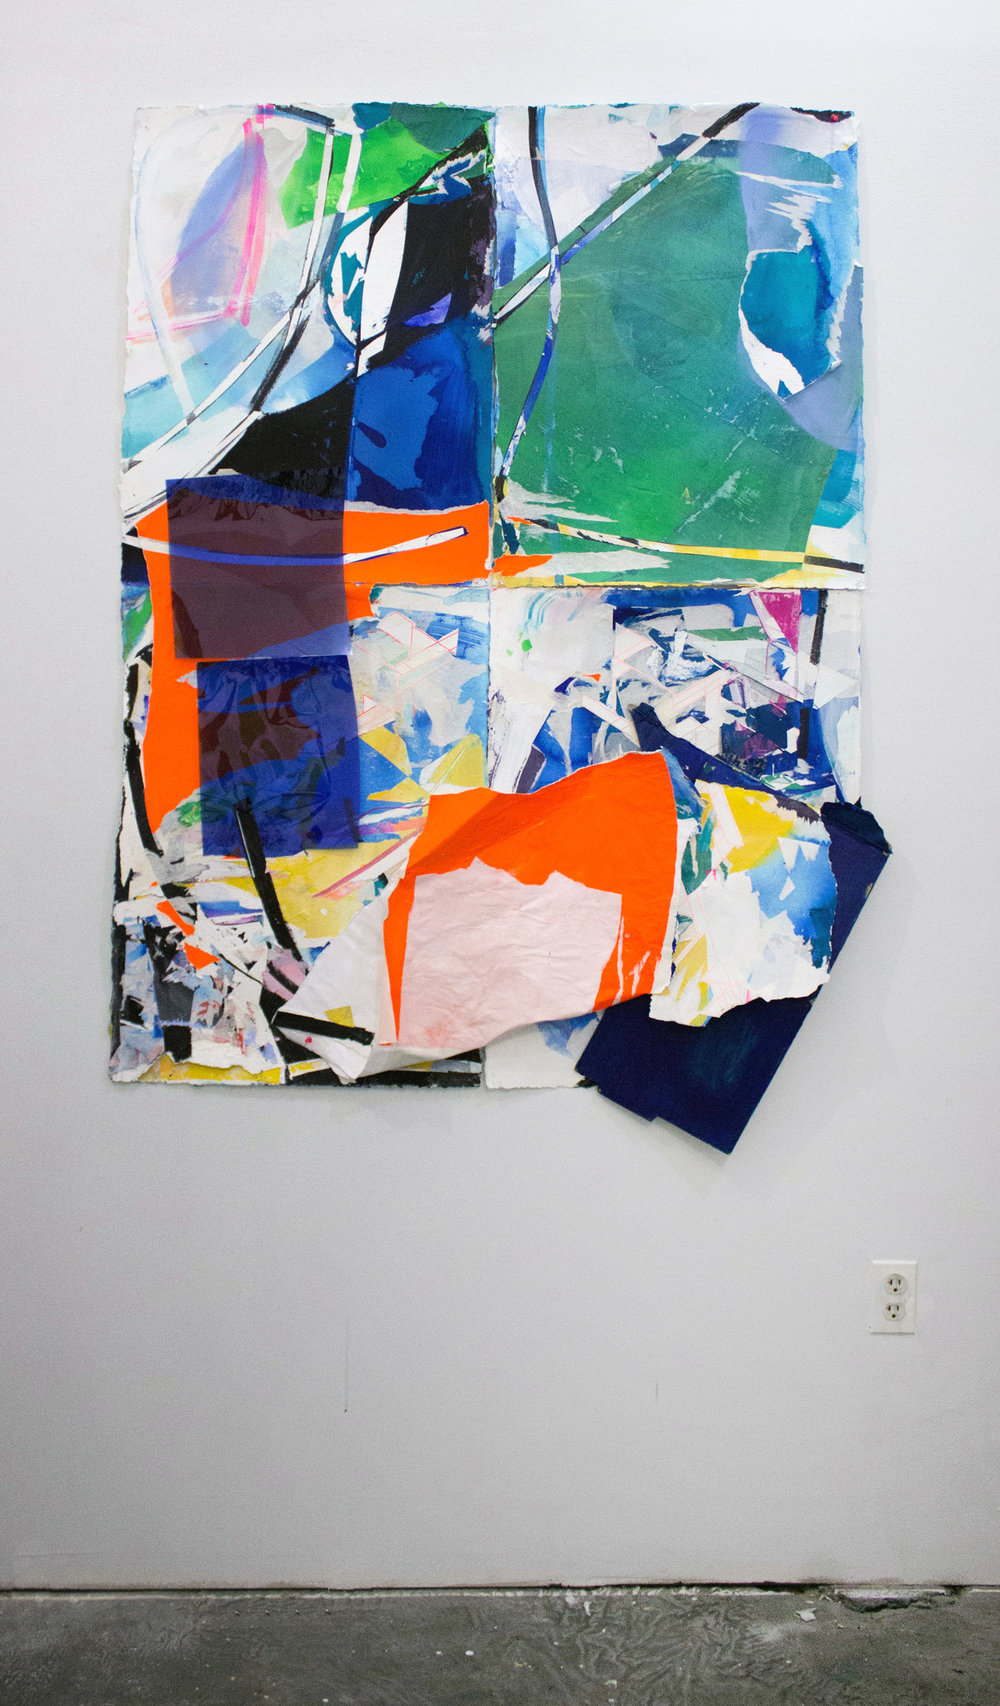 """Shifting Context,  61""""x49"""", Cardboard, Acrylic, Spray Paint, Plastic, Collage, 2017 [Unavailable - Private Collection]"""